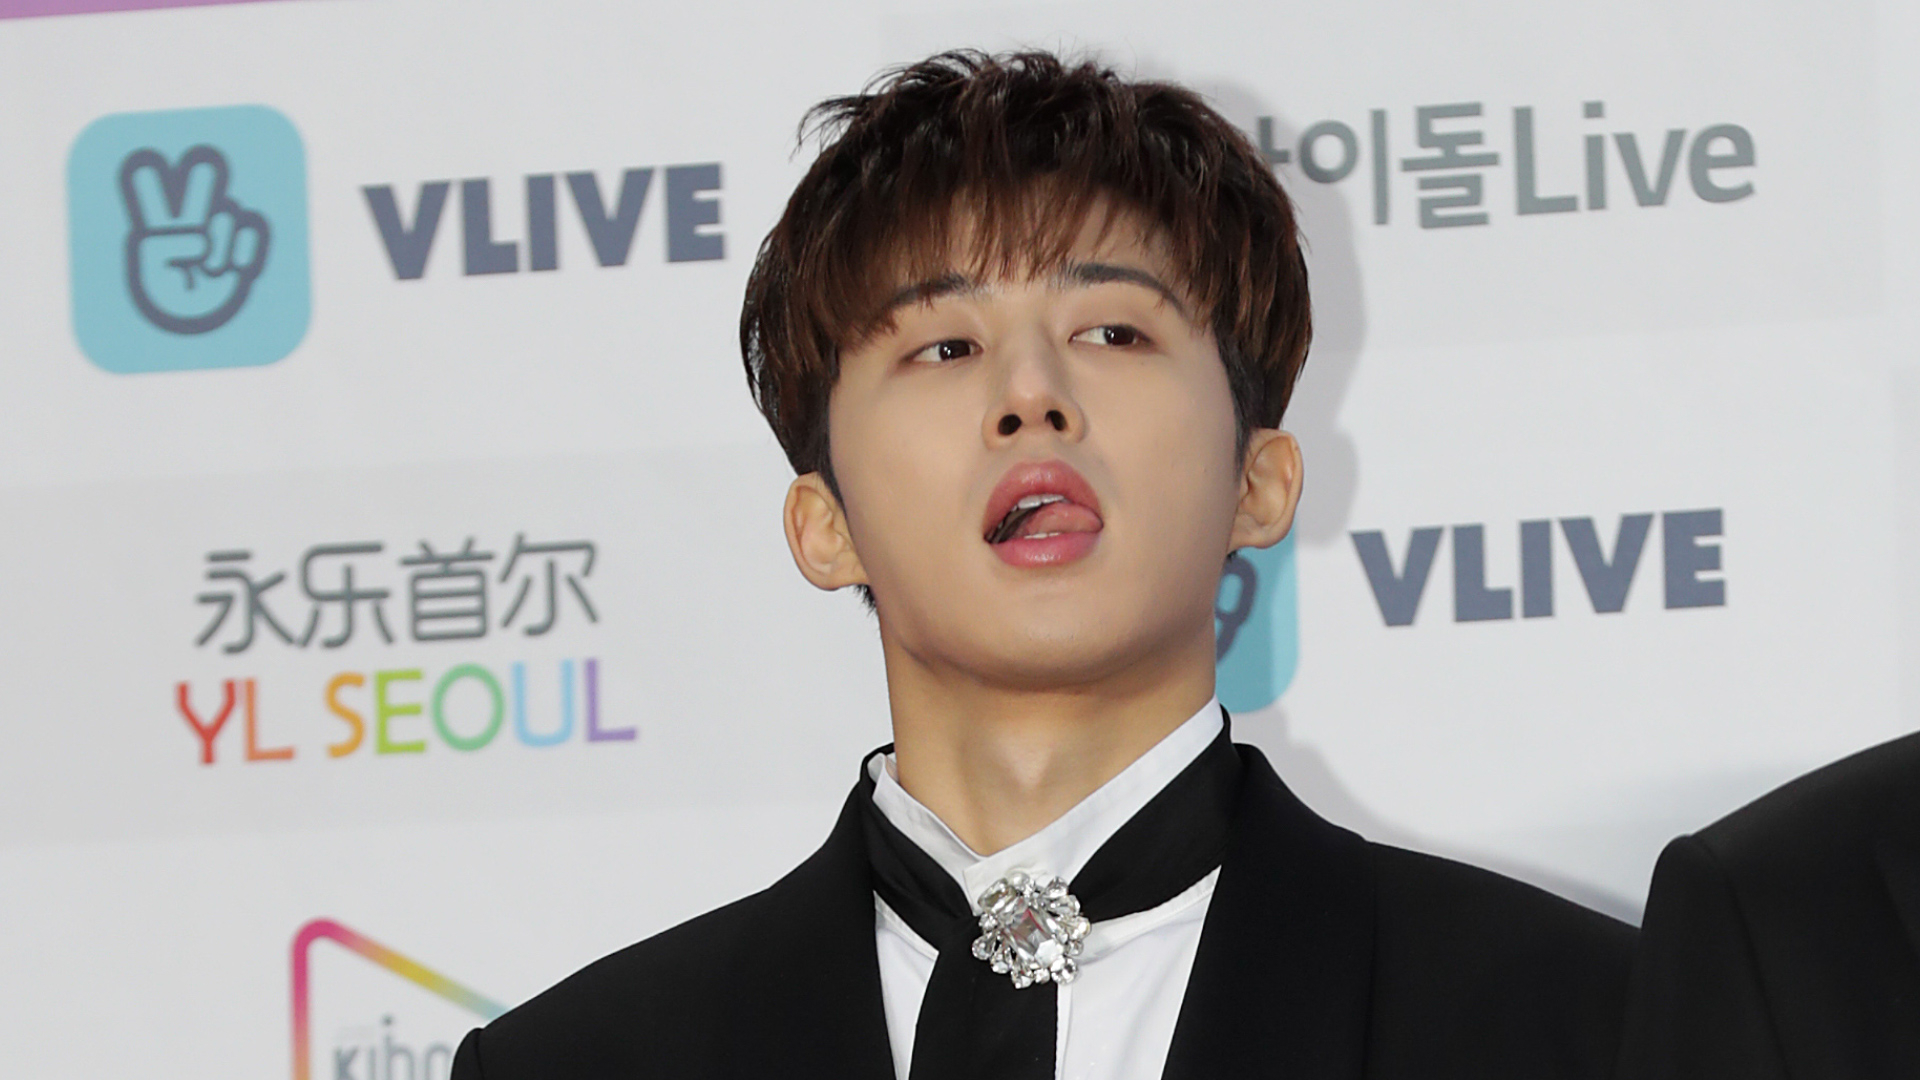 B.I HENGKANG DARI IKON | YG VS DISPATCH VS IKONICS VS POLISI